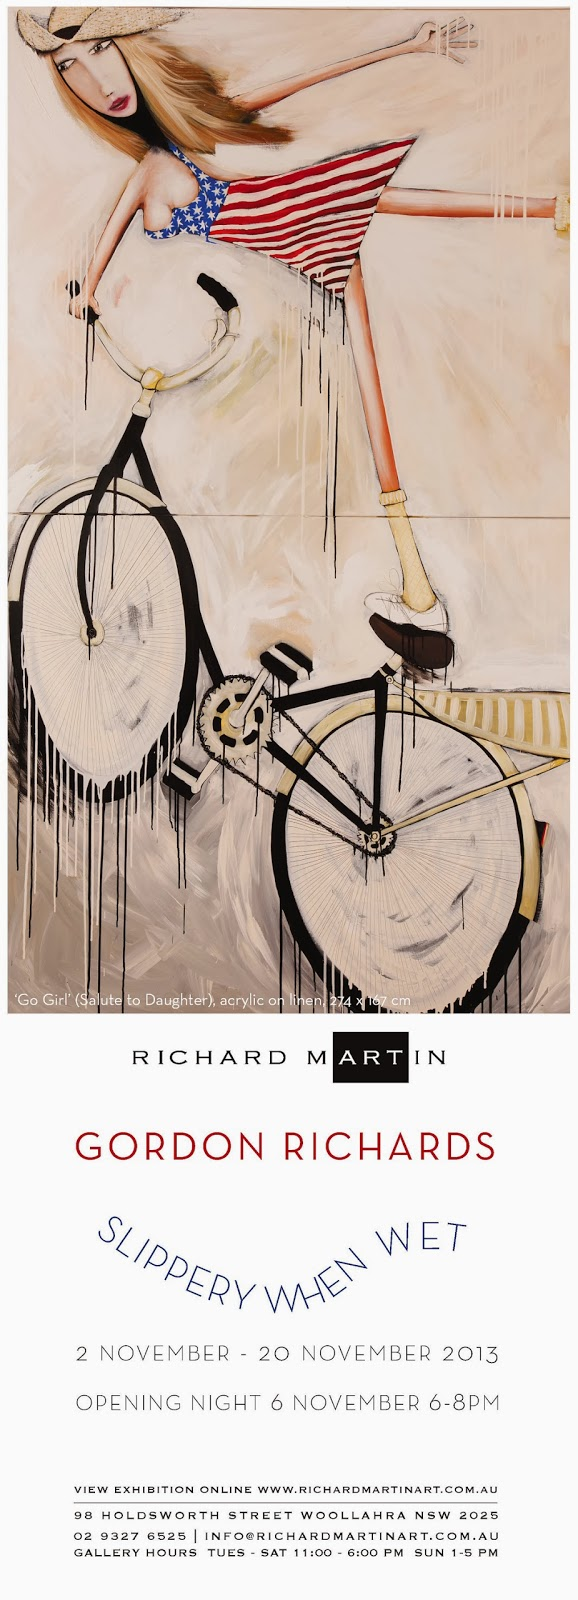 http://www.richardmartinart.com.au/pages/exhibition_details.php?exhibitionID=158